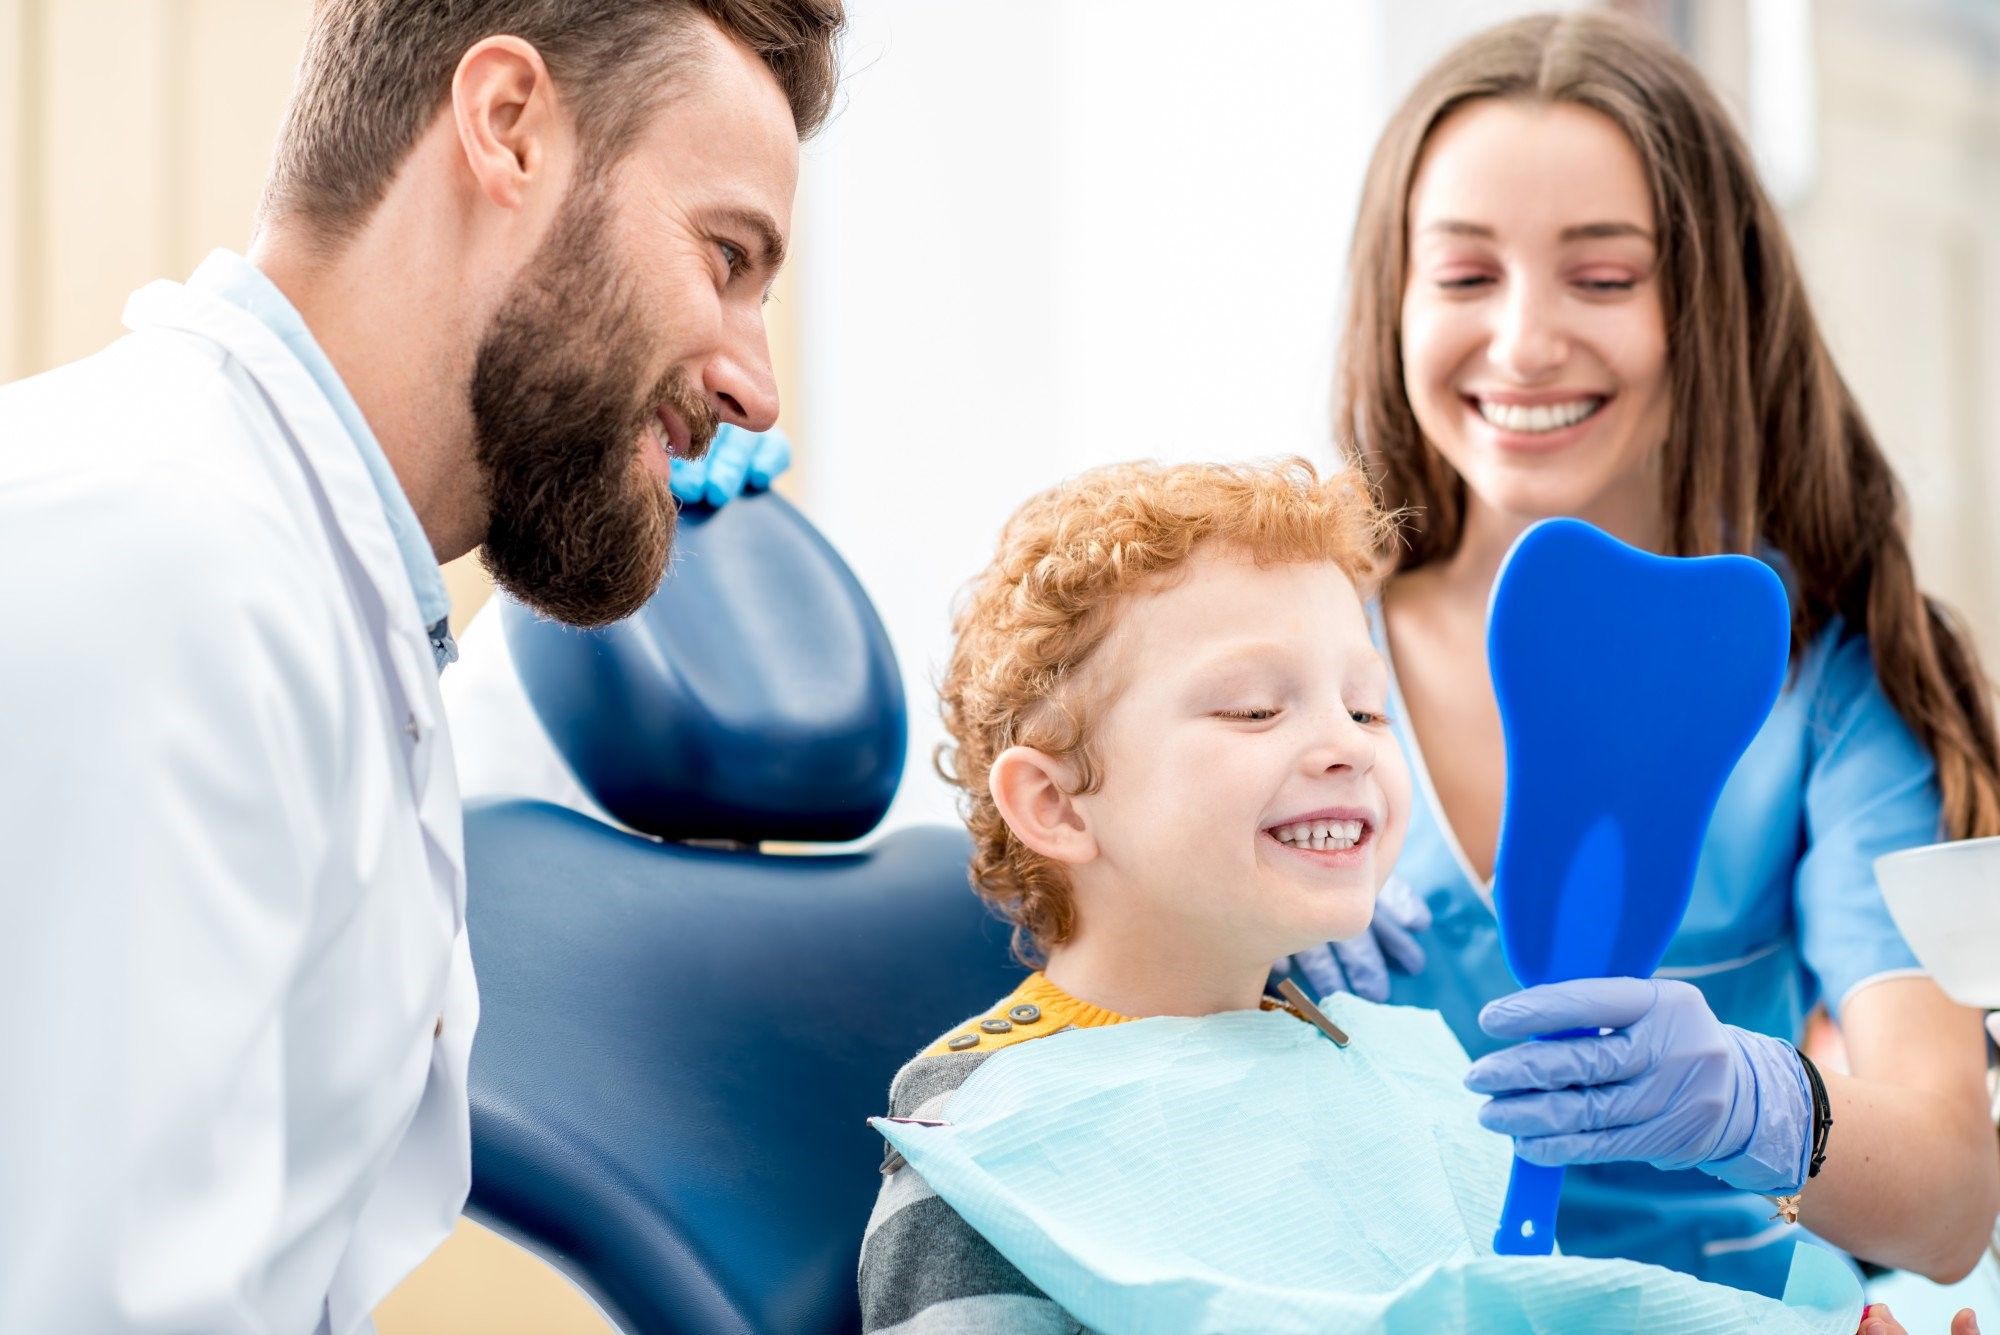 What are the Key Steps to do when you need a Dentist?